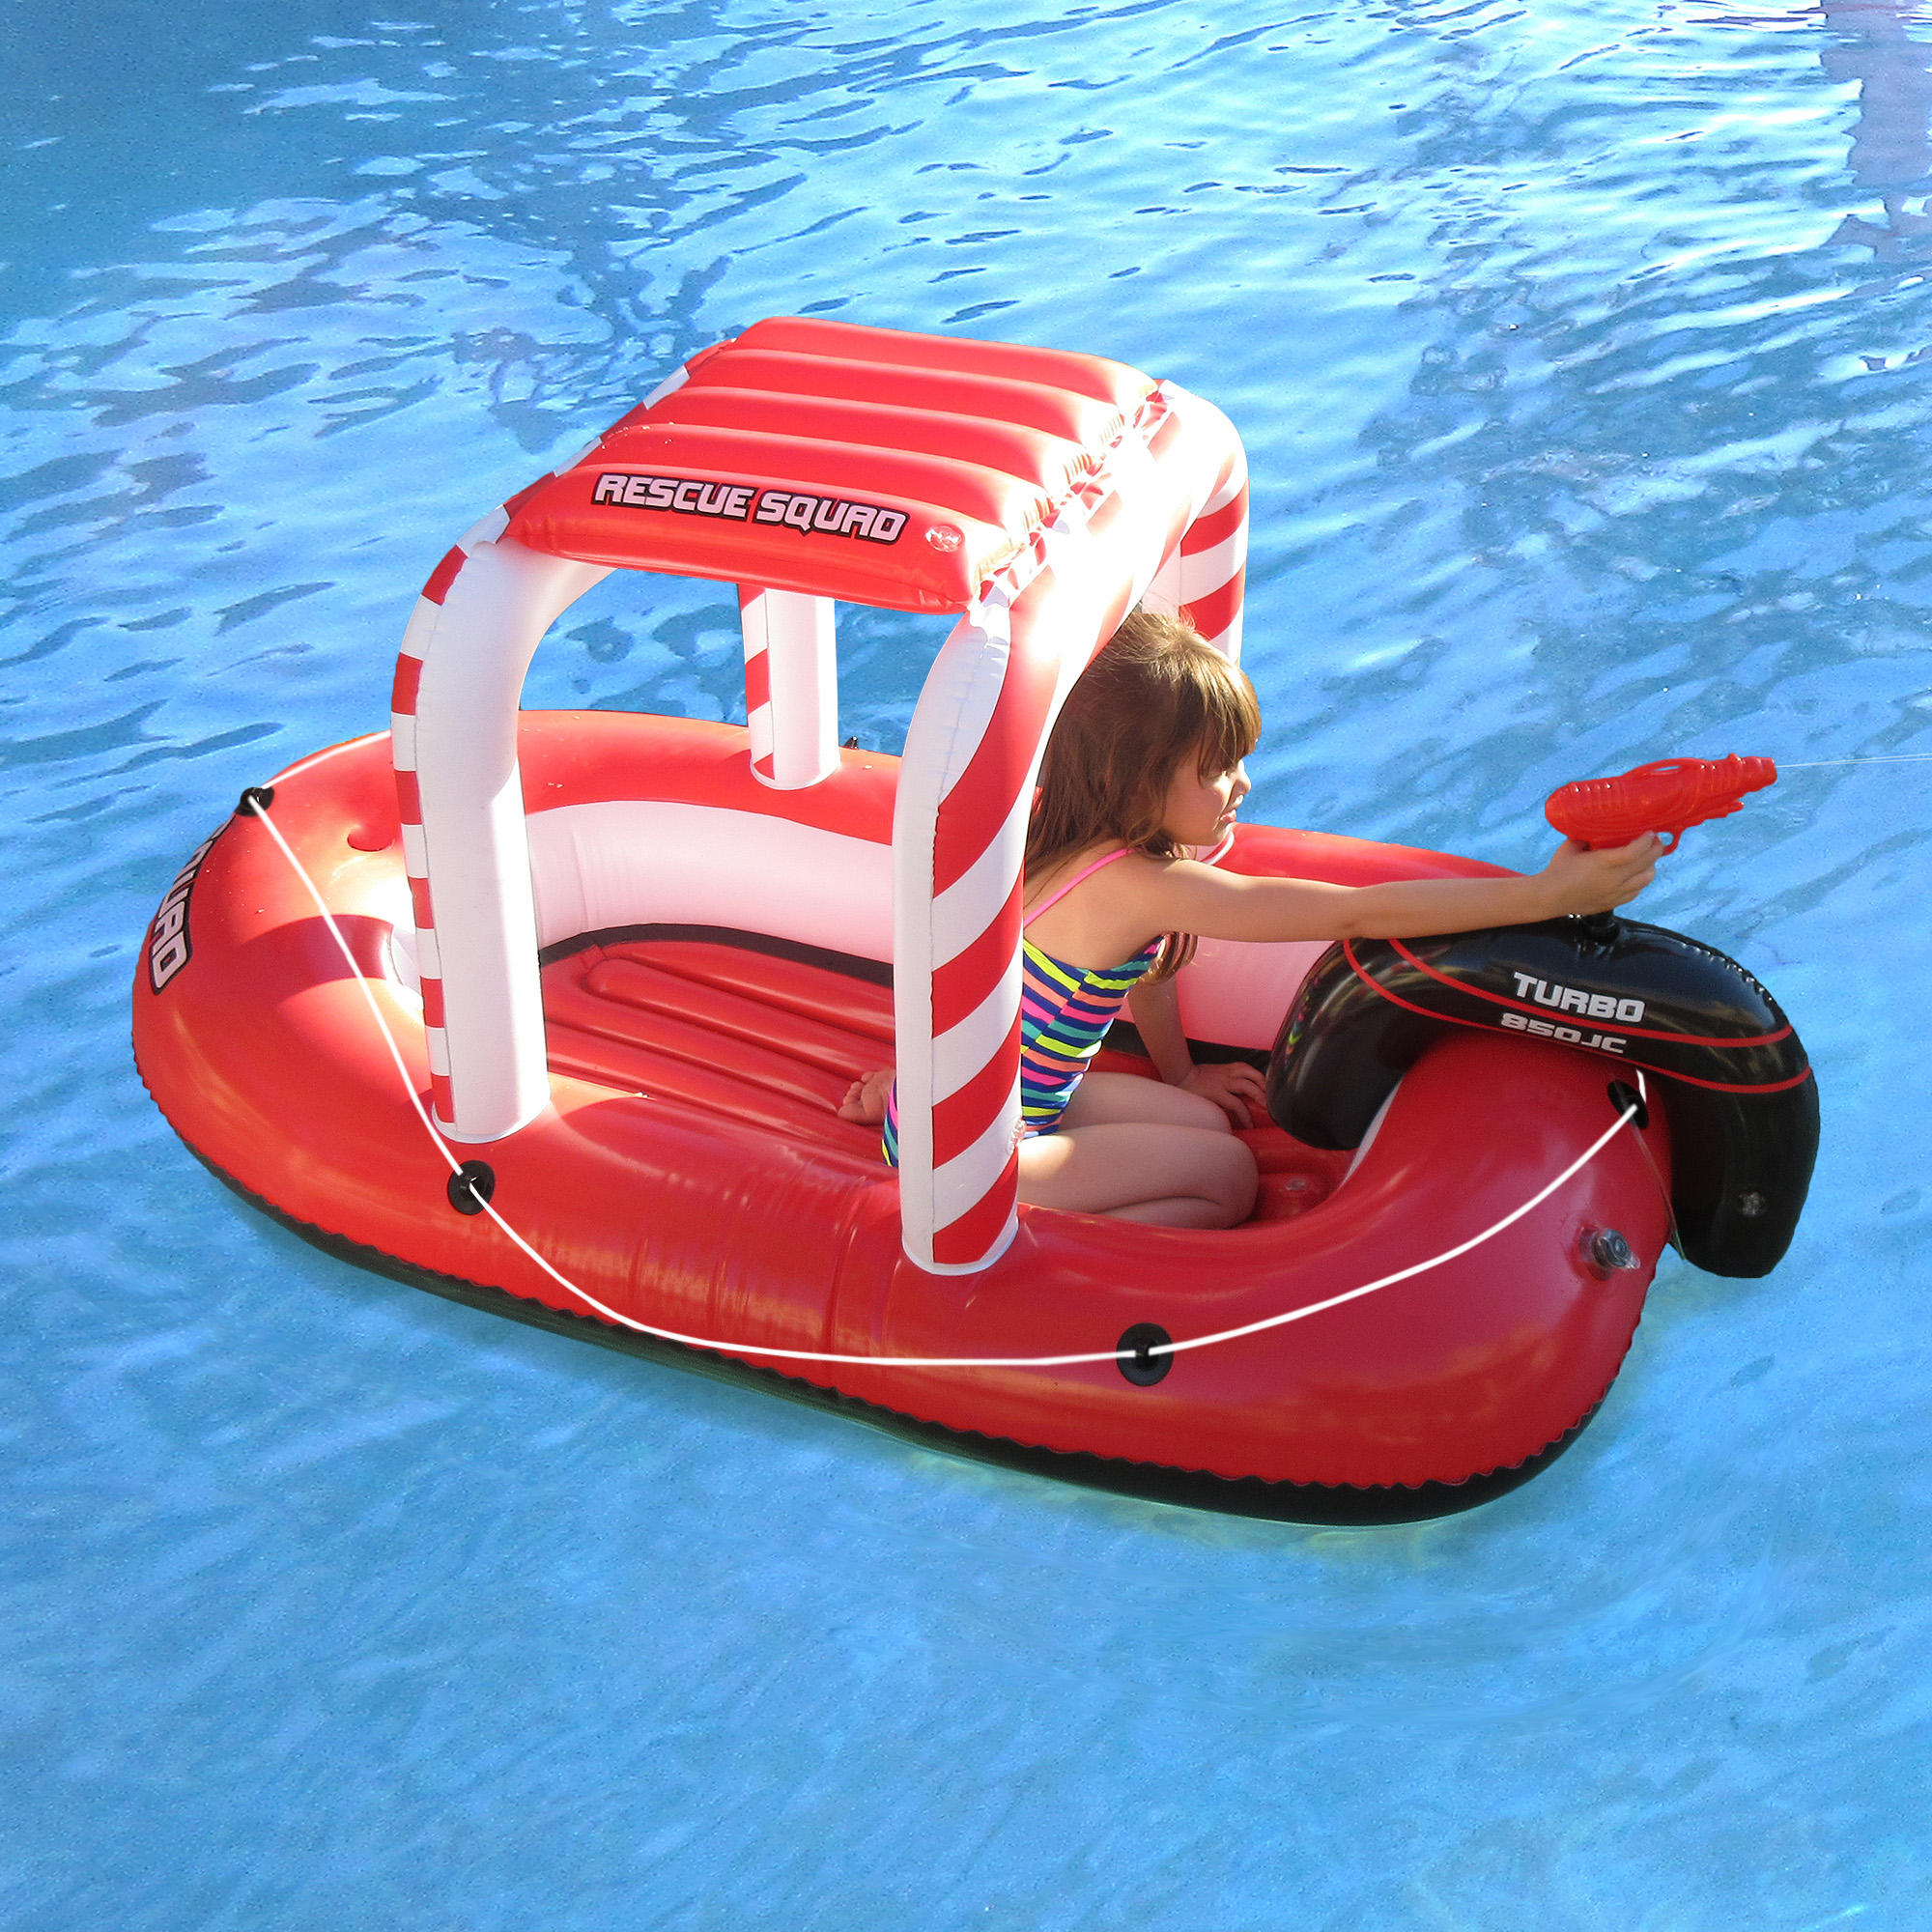 "Blue Wave Rescue Squad Inflatable Boat w  Squirter, 70""L x 37""W x 37""H Red & White by Blue Wave"